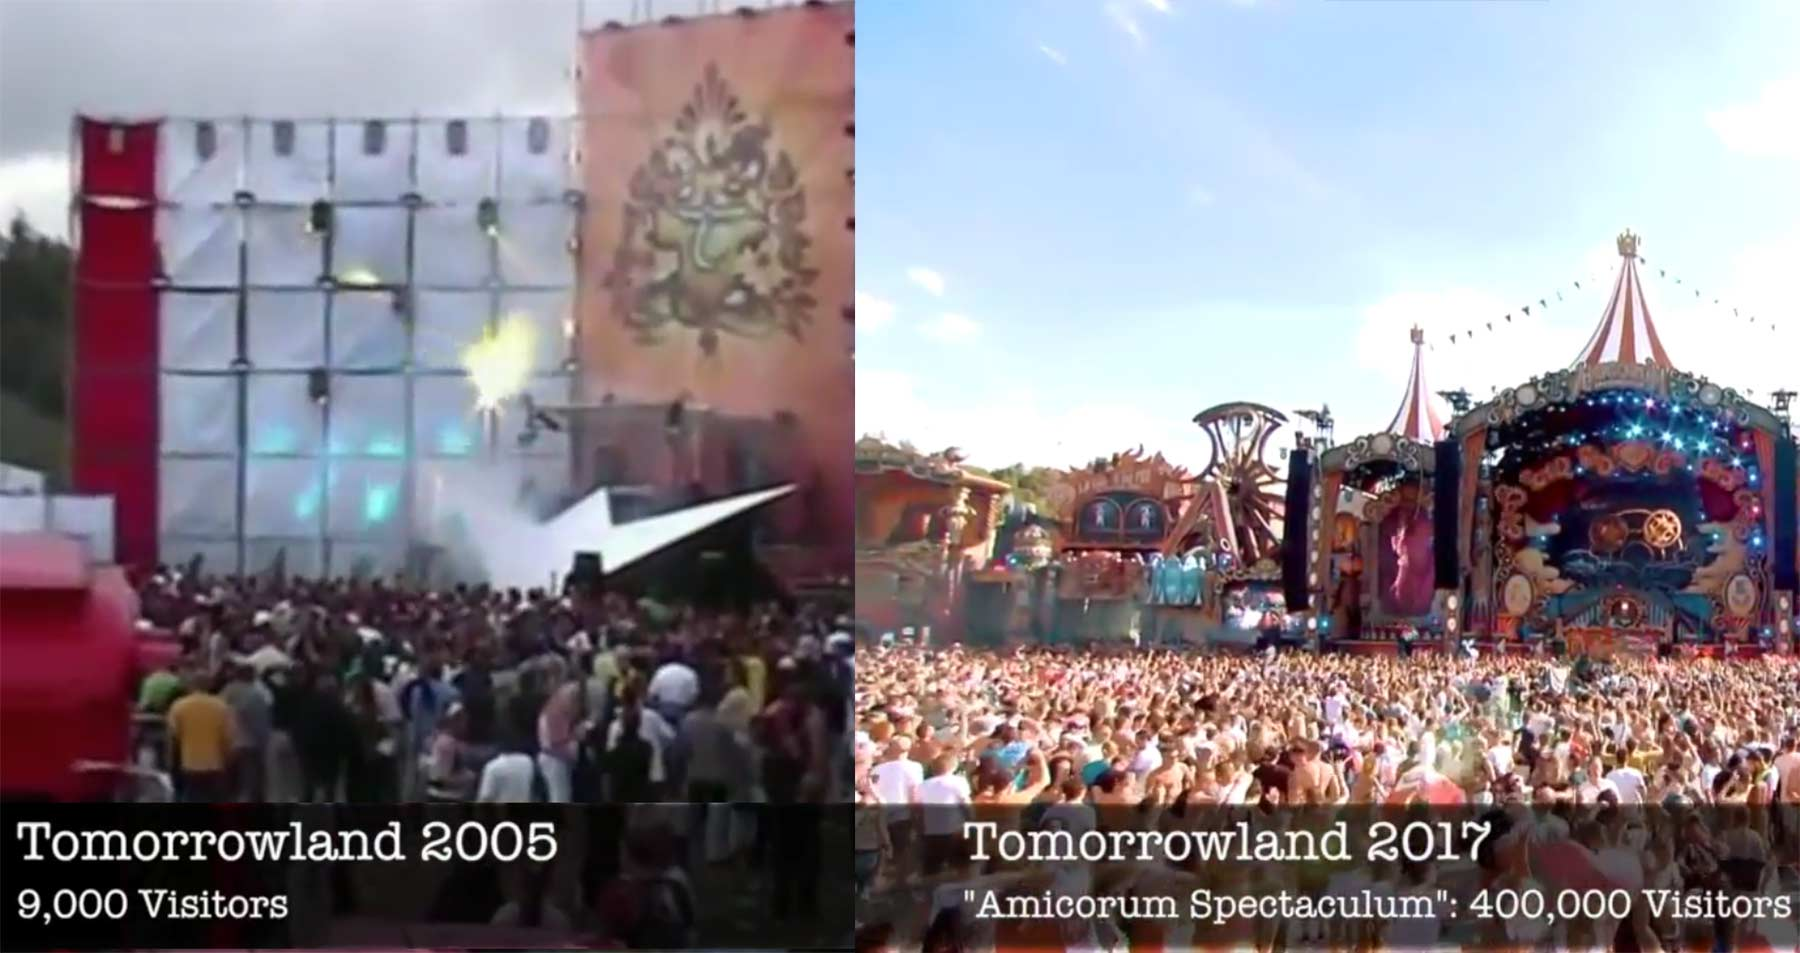 Die Evolution der Main Stage des Tomorrowland Festivals tomorrowland-main-stage-evolution